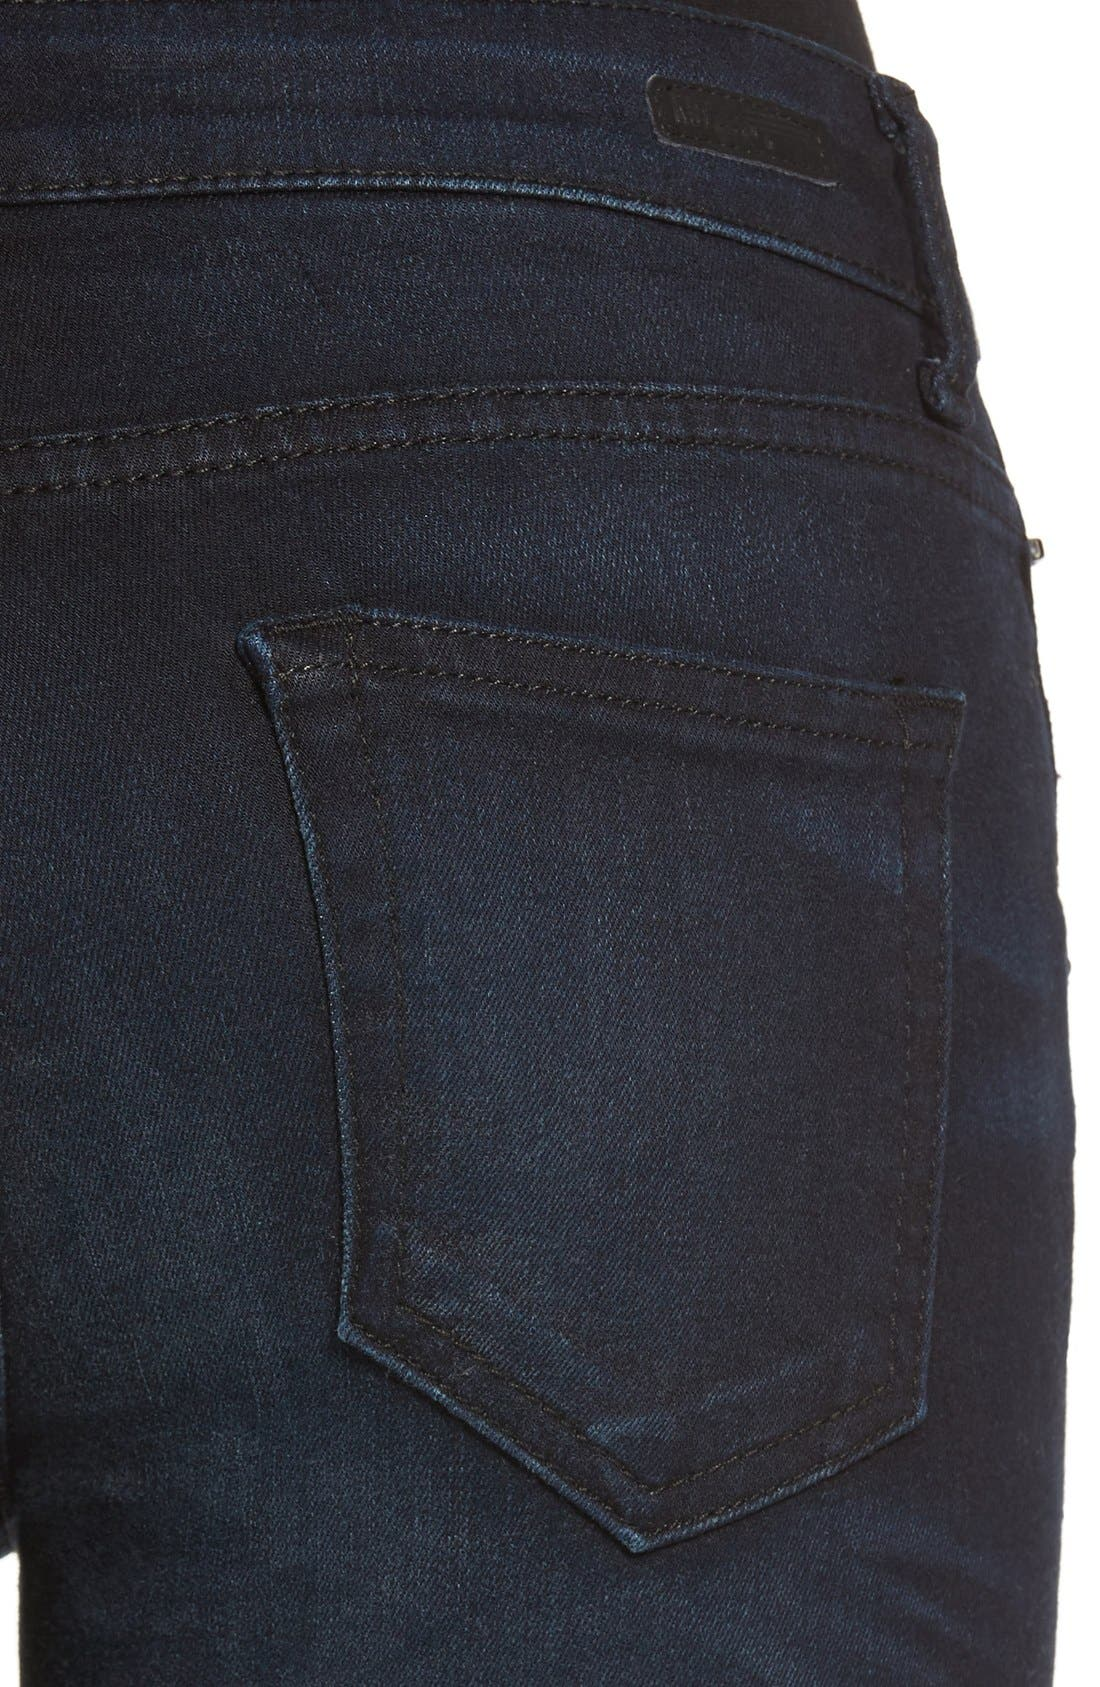 Alternate Image 4  - KUT from the Kloth Stretch Crop Skinny Jeans (Refresh)